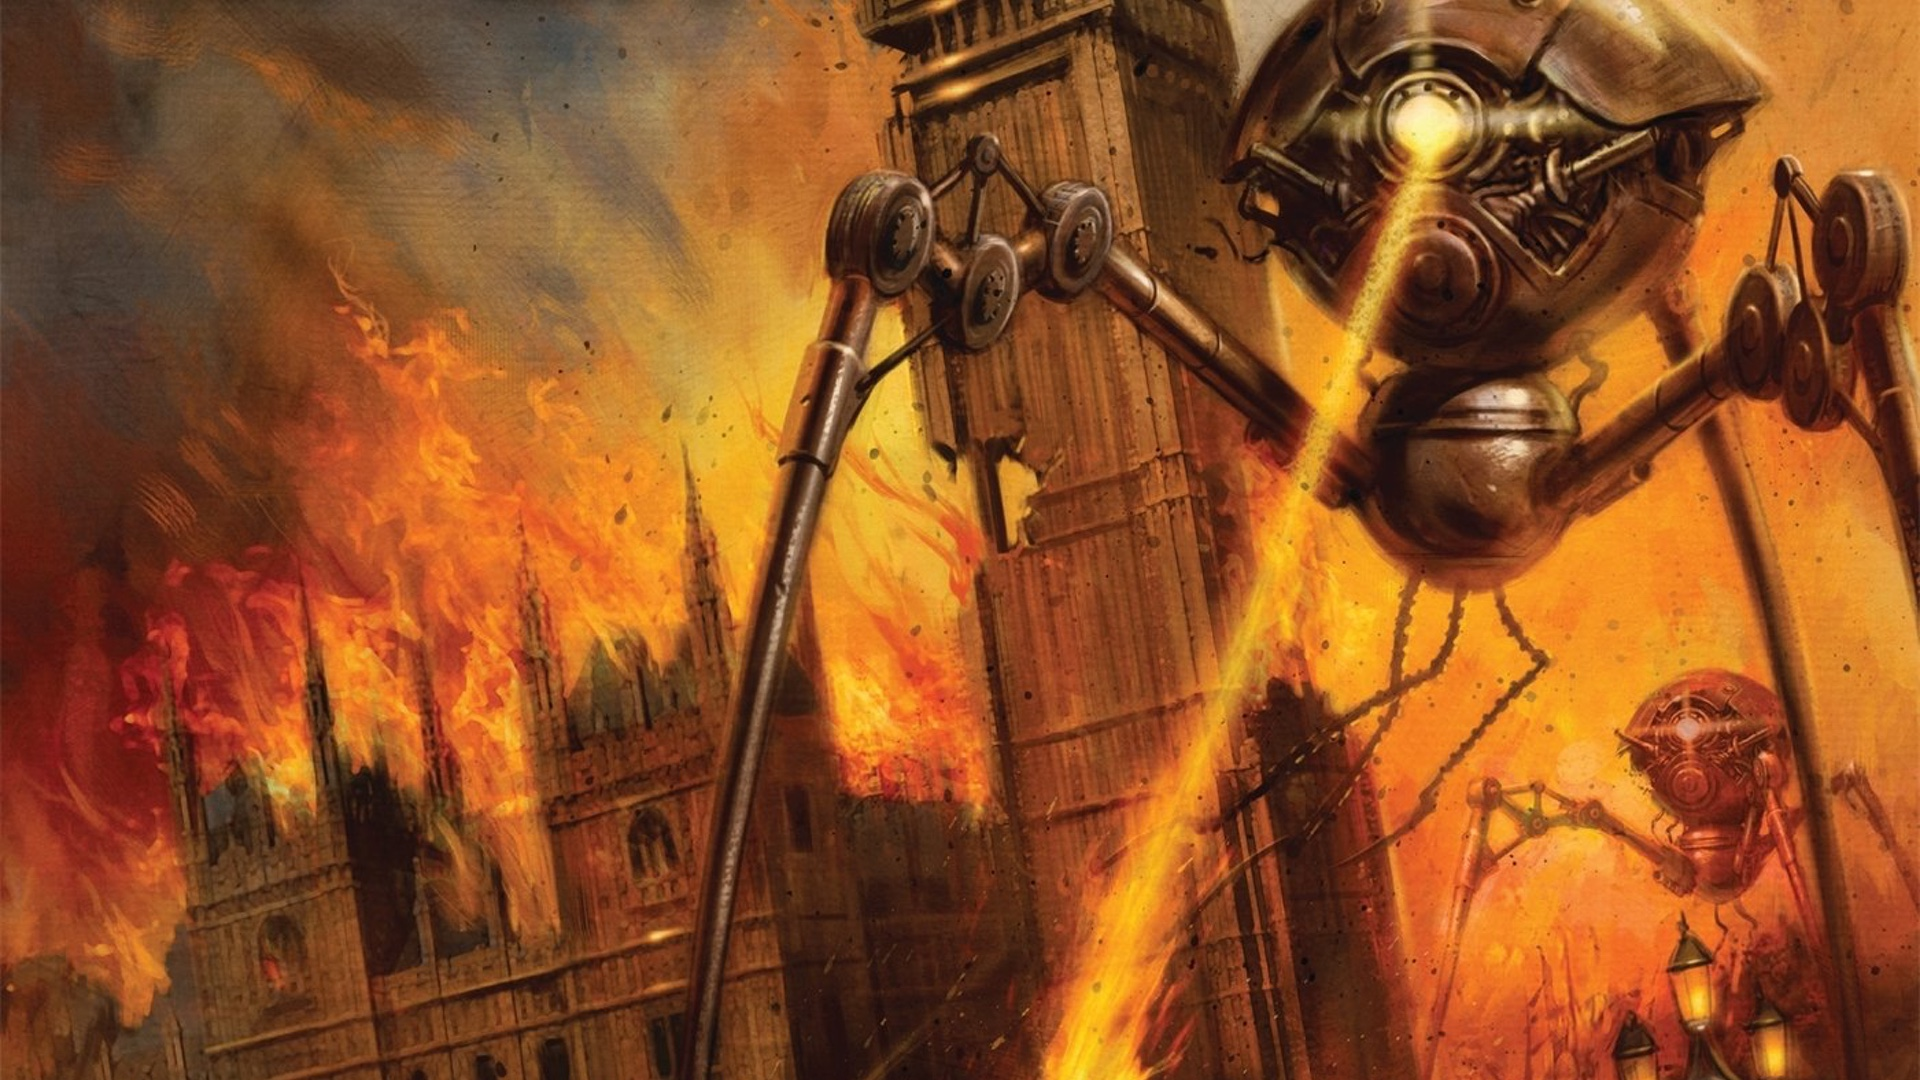 Fox S War Of The Worlds Series Will Star Gabriel Byrne And